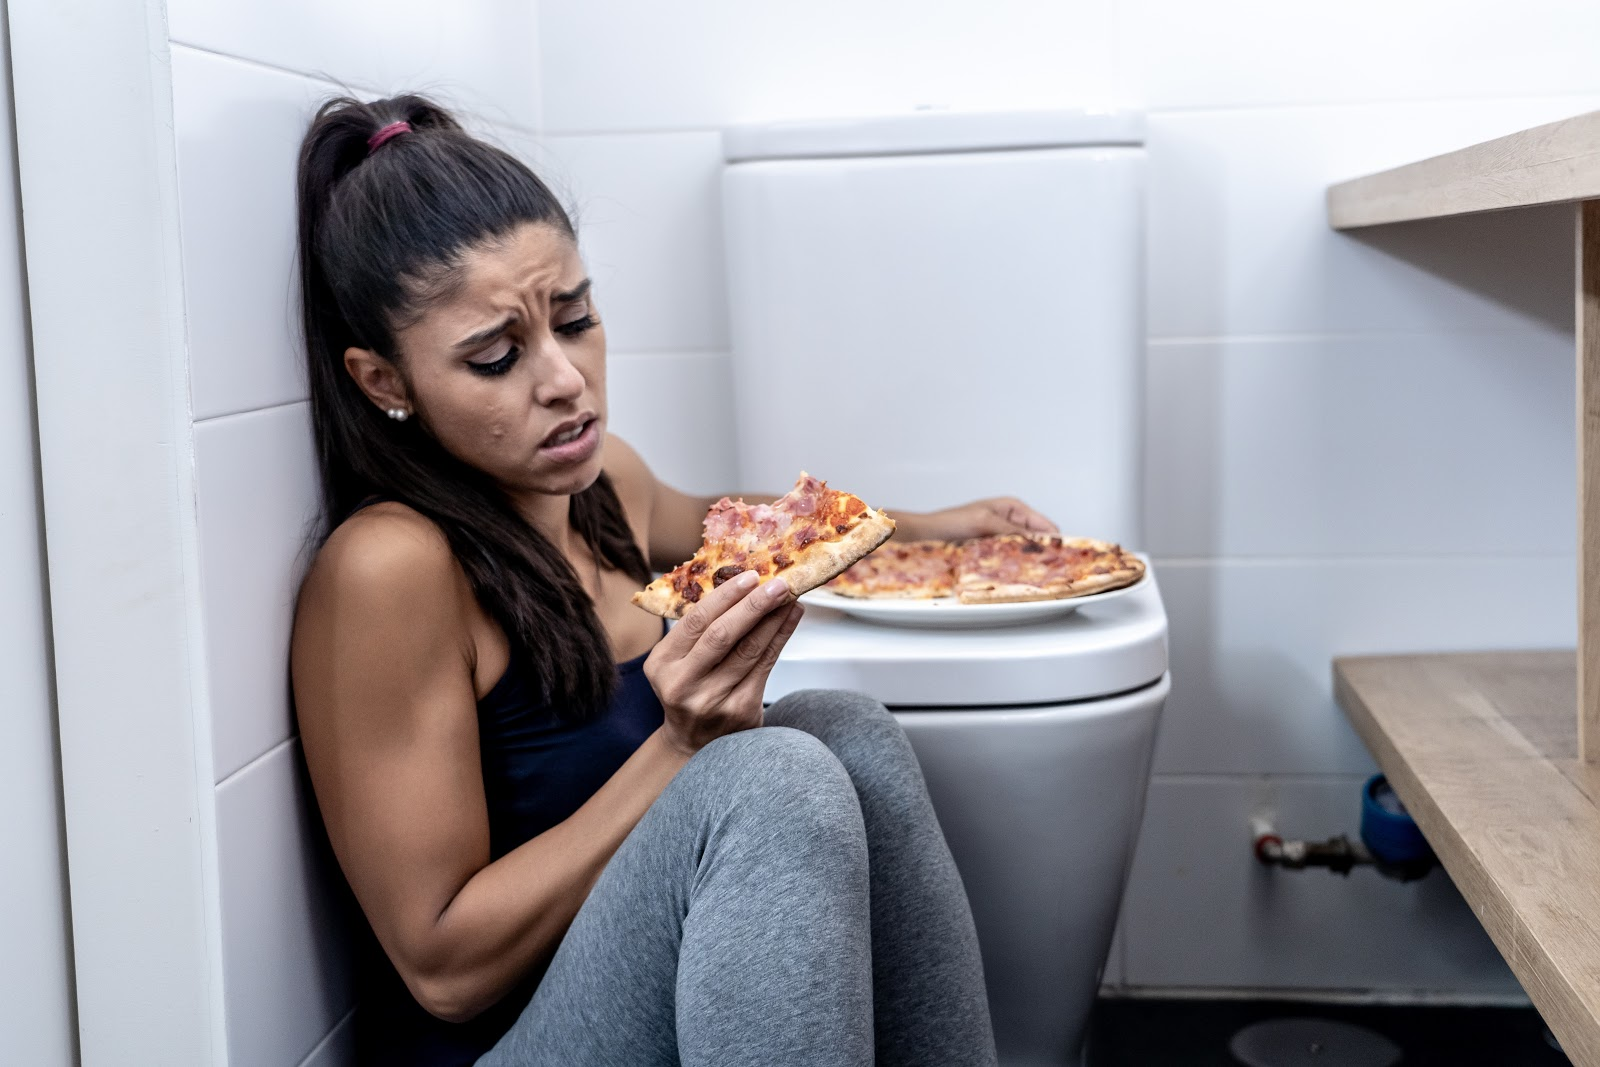 A woman eating a pizza while sitting on the bathroom floor next to the toilet